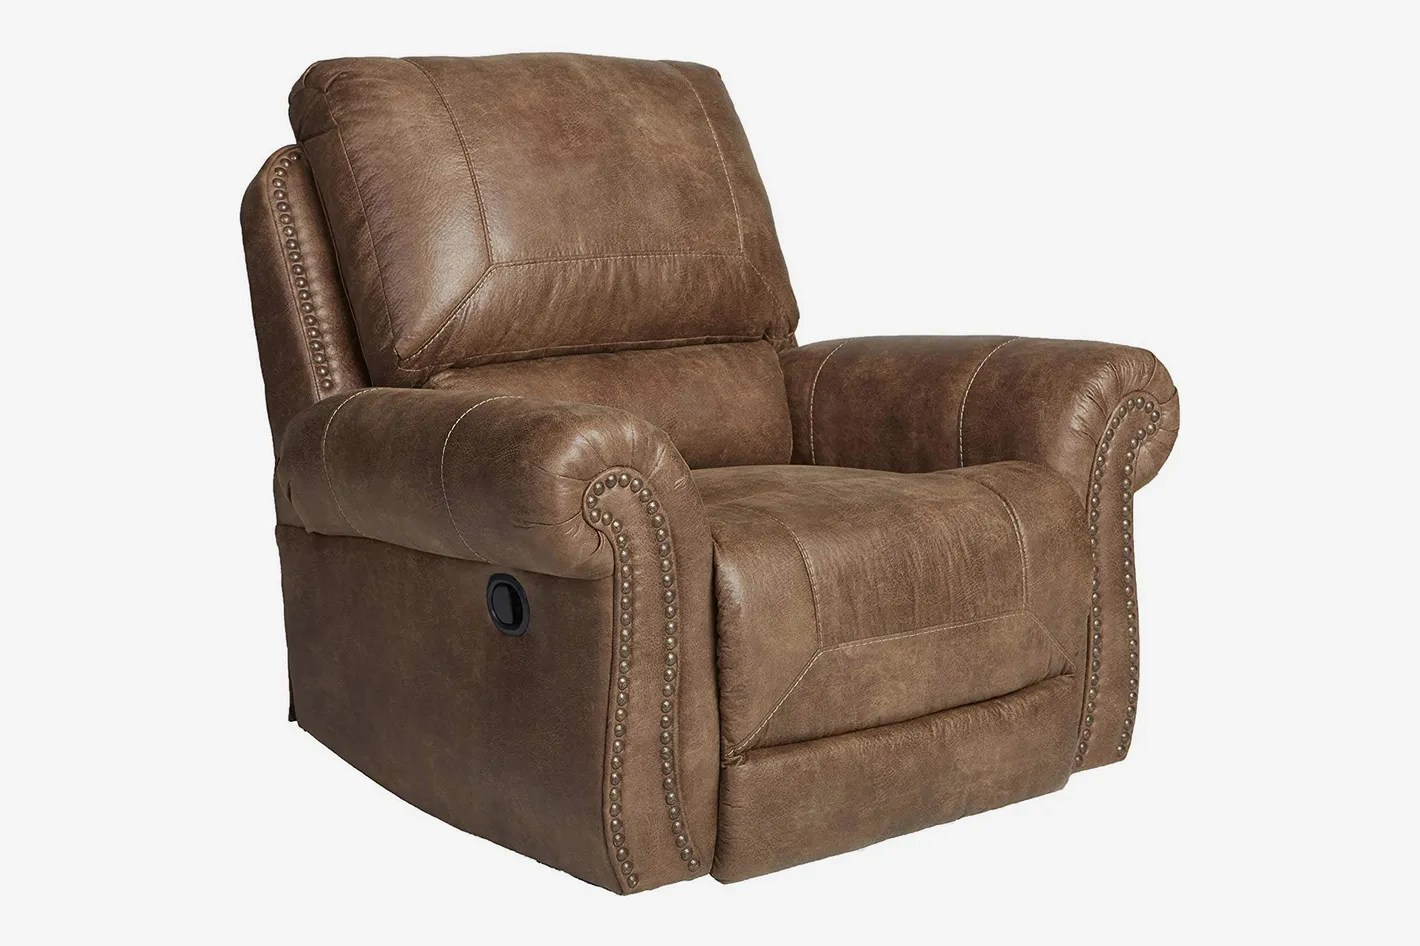 recliner chair with ottoman manufacturers inflatable stool 9 best leather recliners 2018 ashley furniture signature design larkinhurst rocker manual reclining